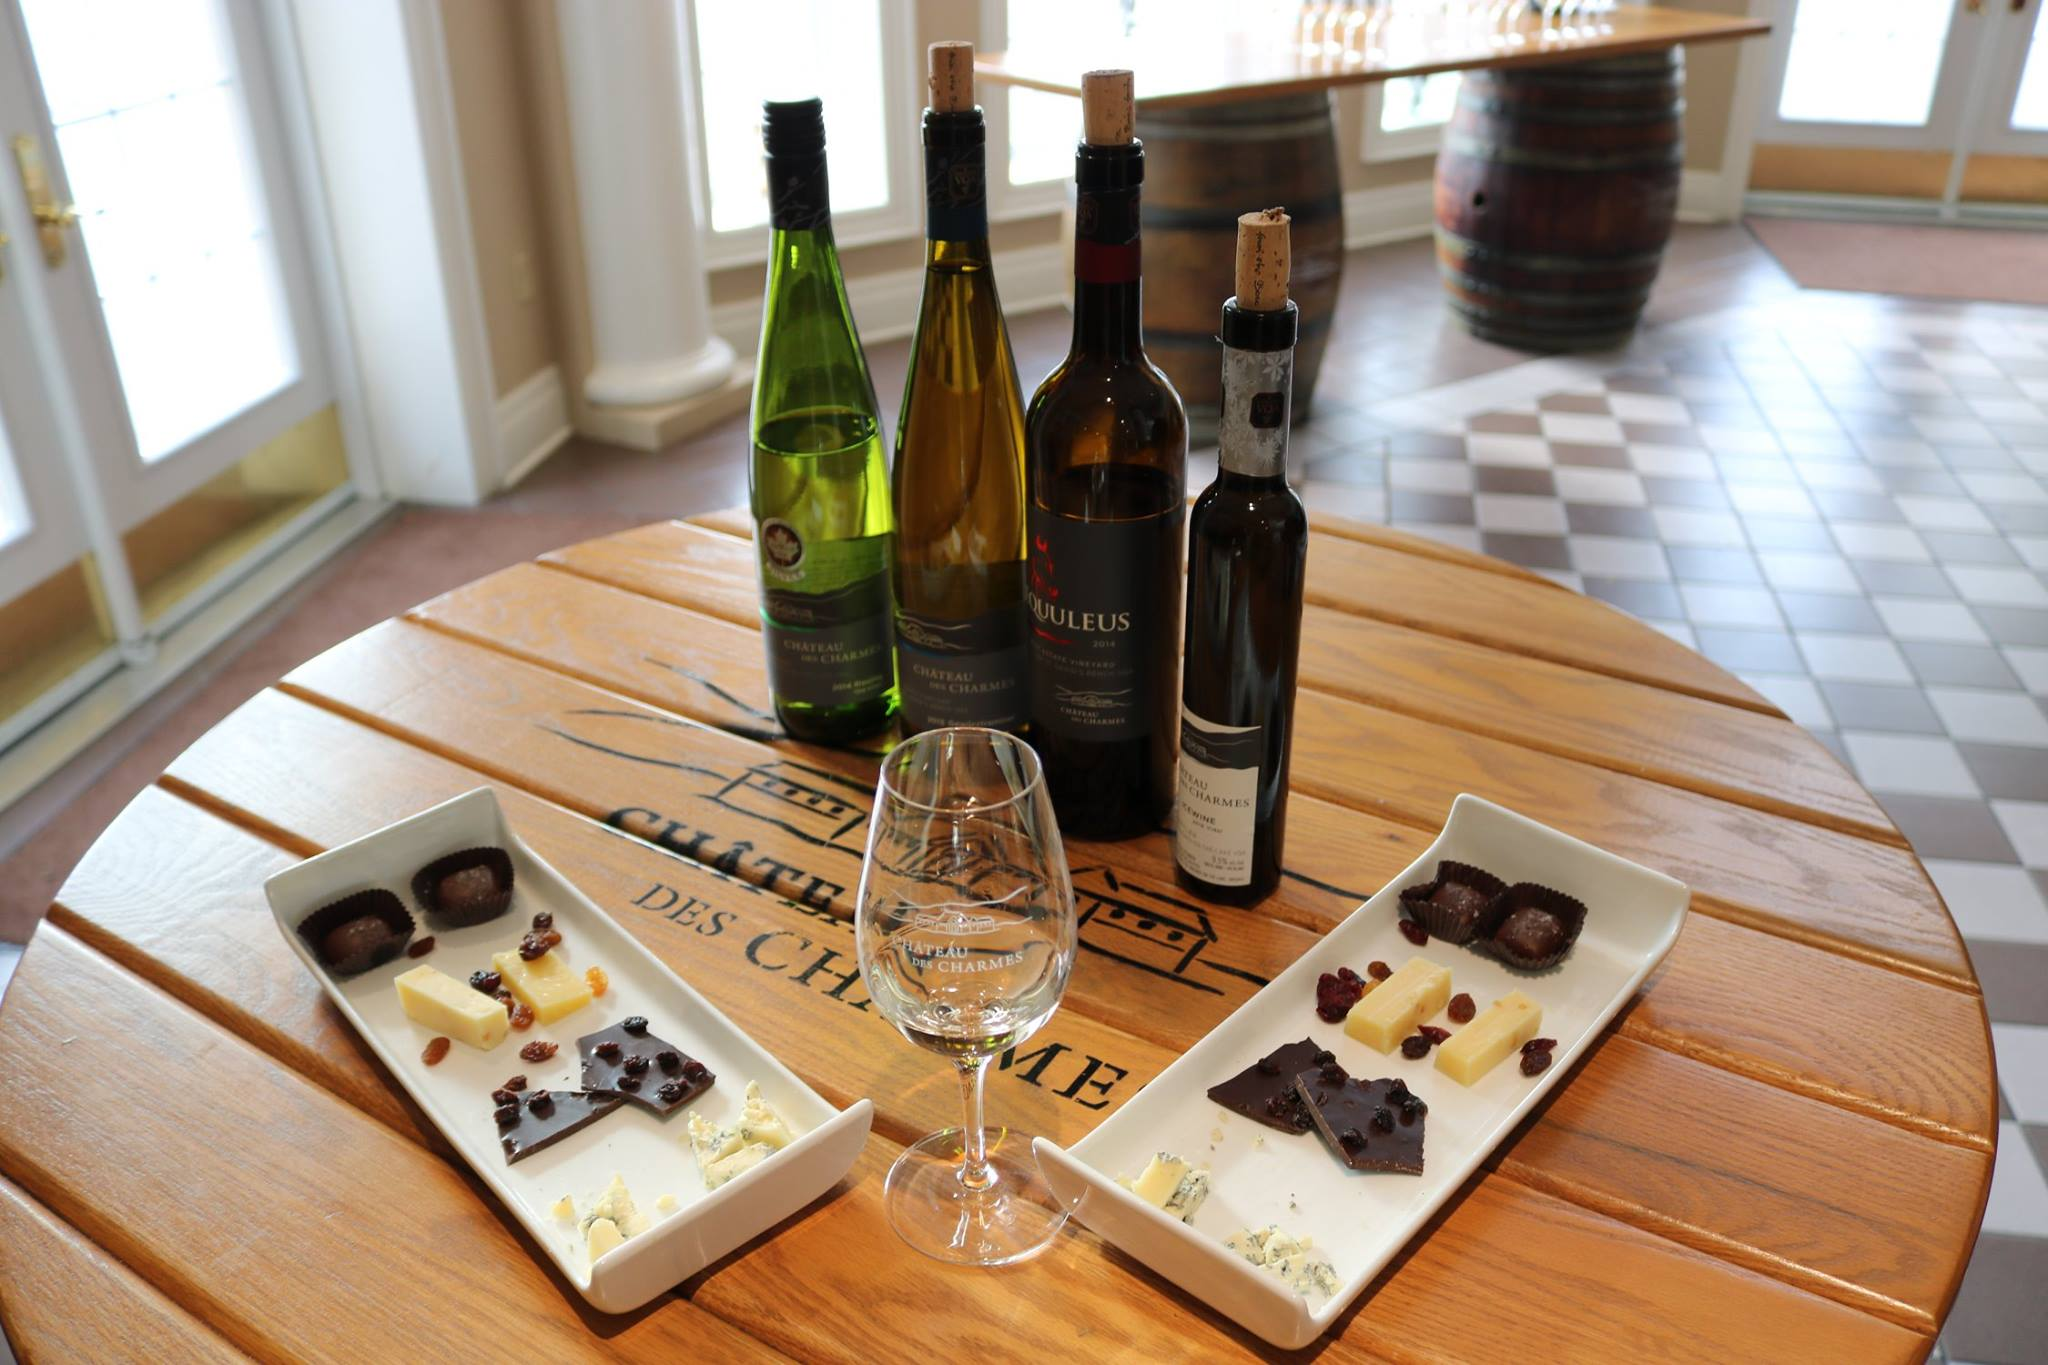 Rent a charter bus to get to Château des Charmes, and enjoy a sweet and salty smorgasbord, perfectly paired with their wine selection.